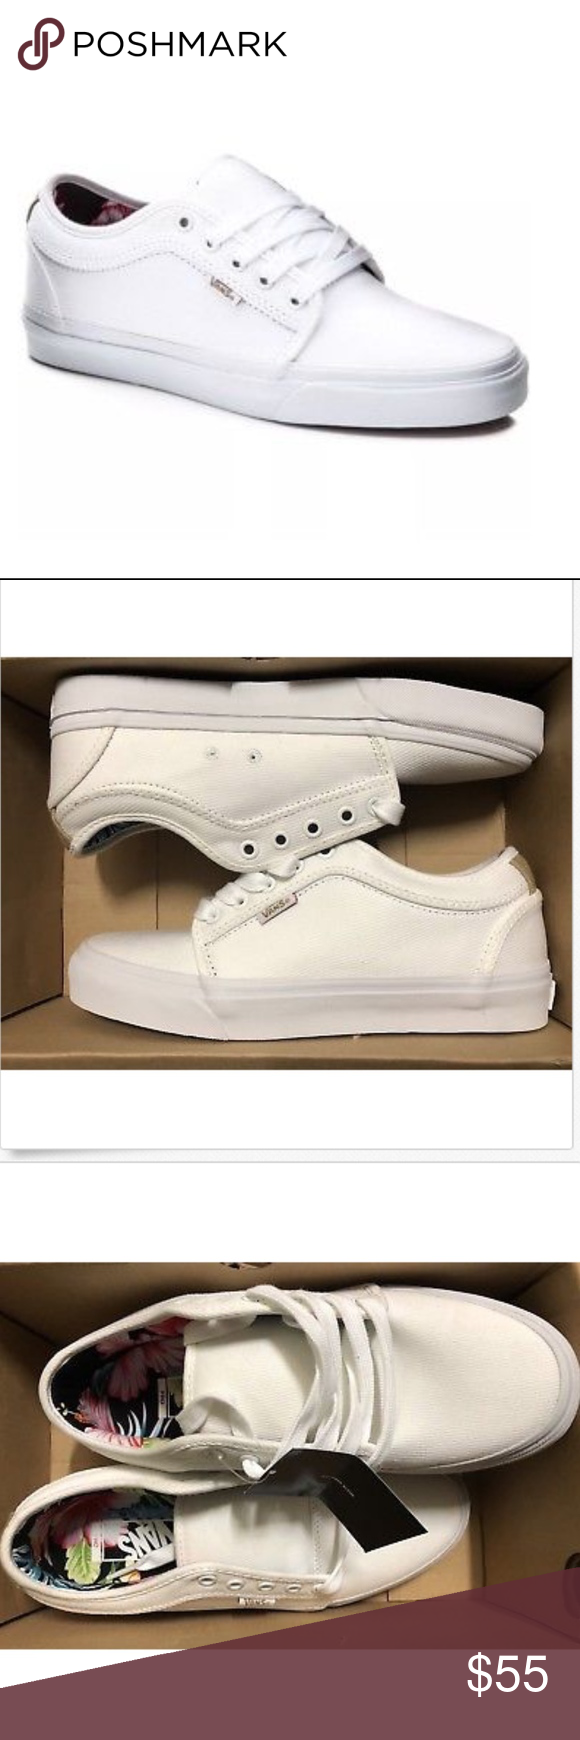 f327738d715 Vans Chukka Low Aloha White Twill Shoes Vans Chukka Low Aloha White Twill  Size Men 7.5 Brand new in box Vans Shoes Athletic Shoes